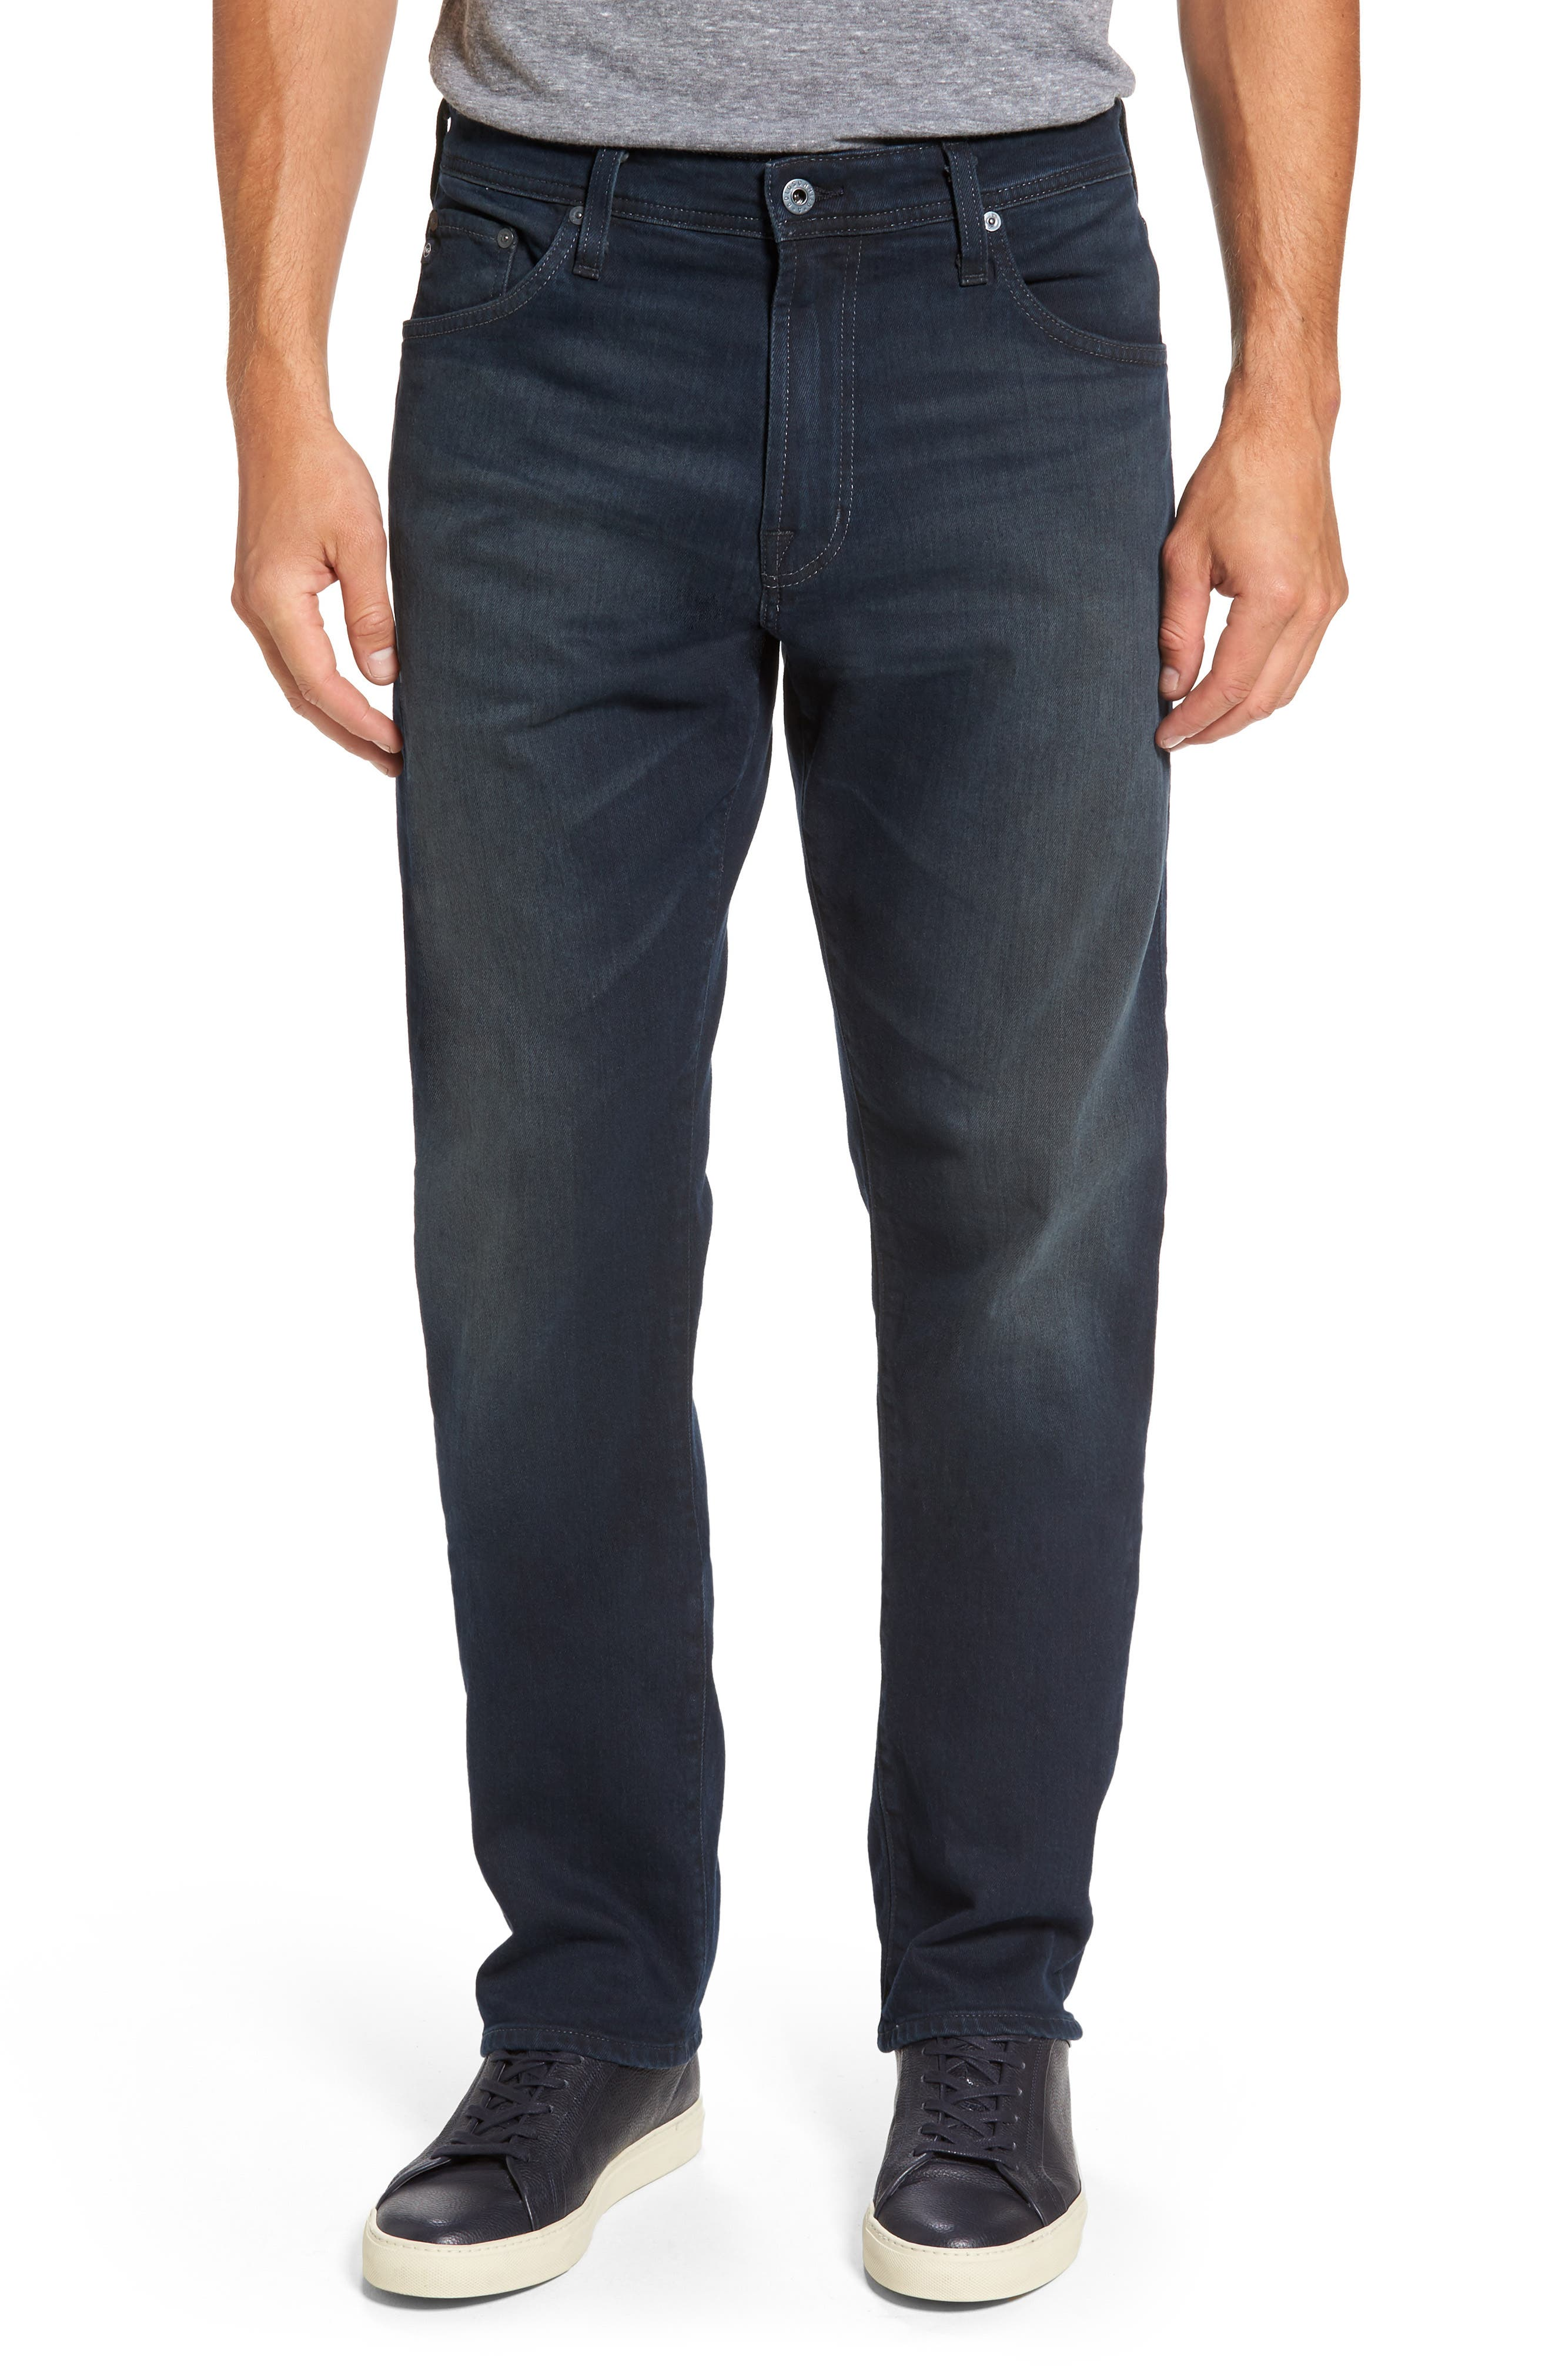 Ives Straight Fit Jeans,                             Main thumbnail 1, color,                             433